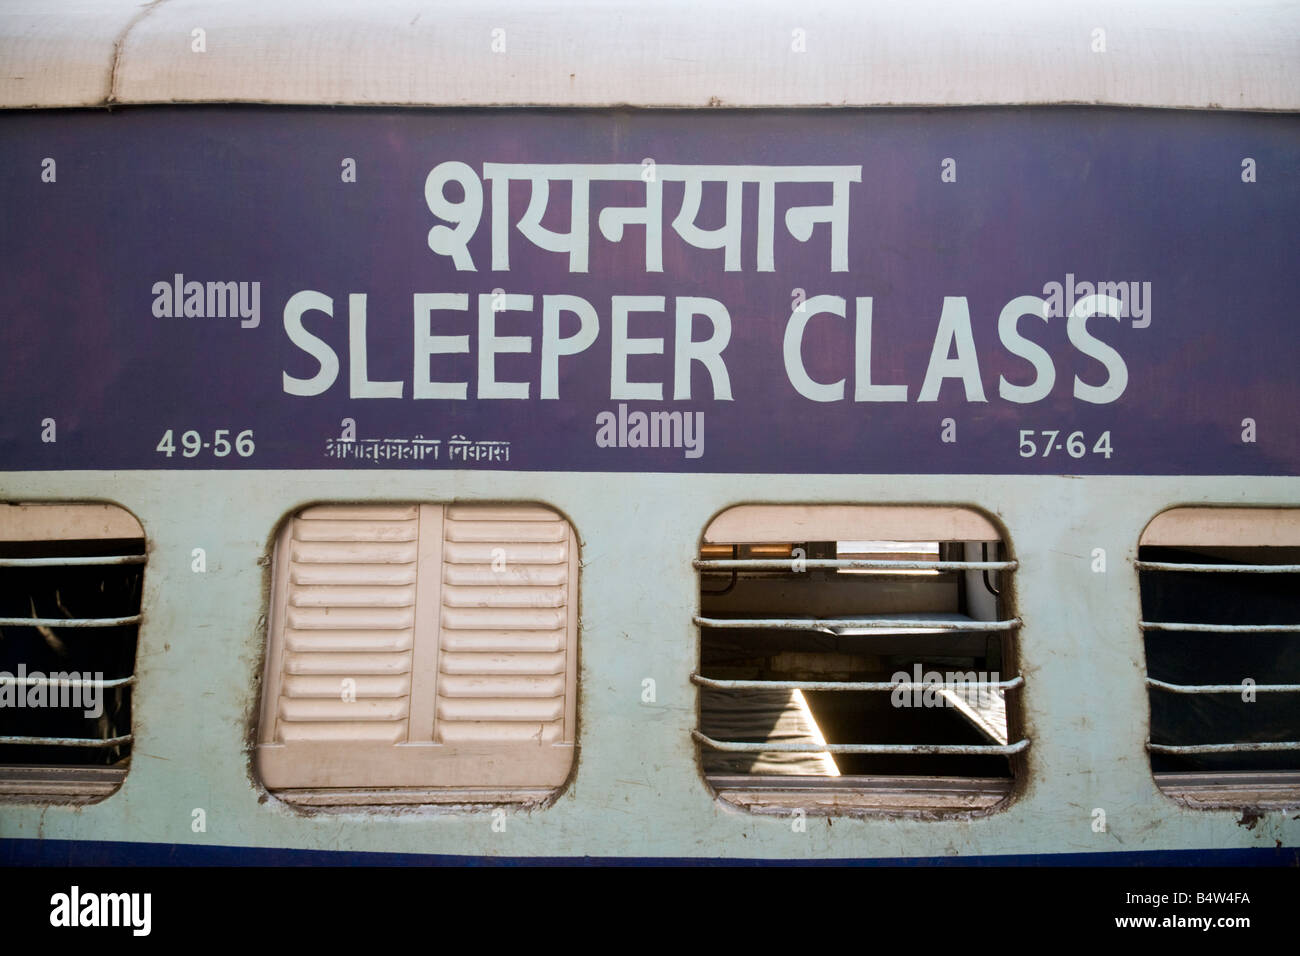 A sleeper class rail passenger coach on a train, New Delhi railway station, India Asia - Stock Image